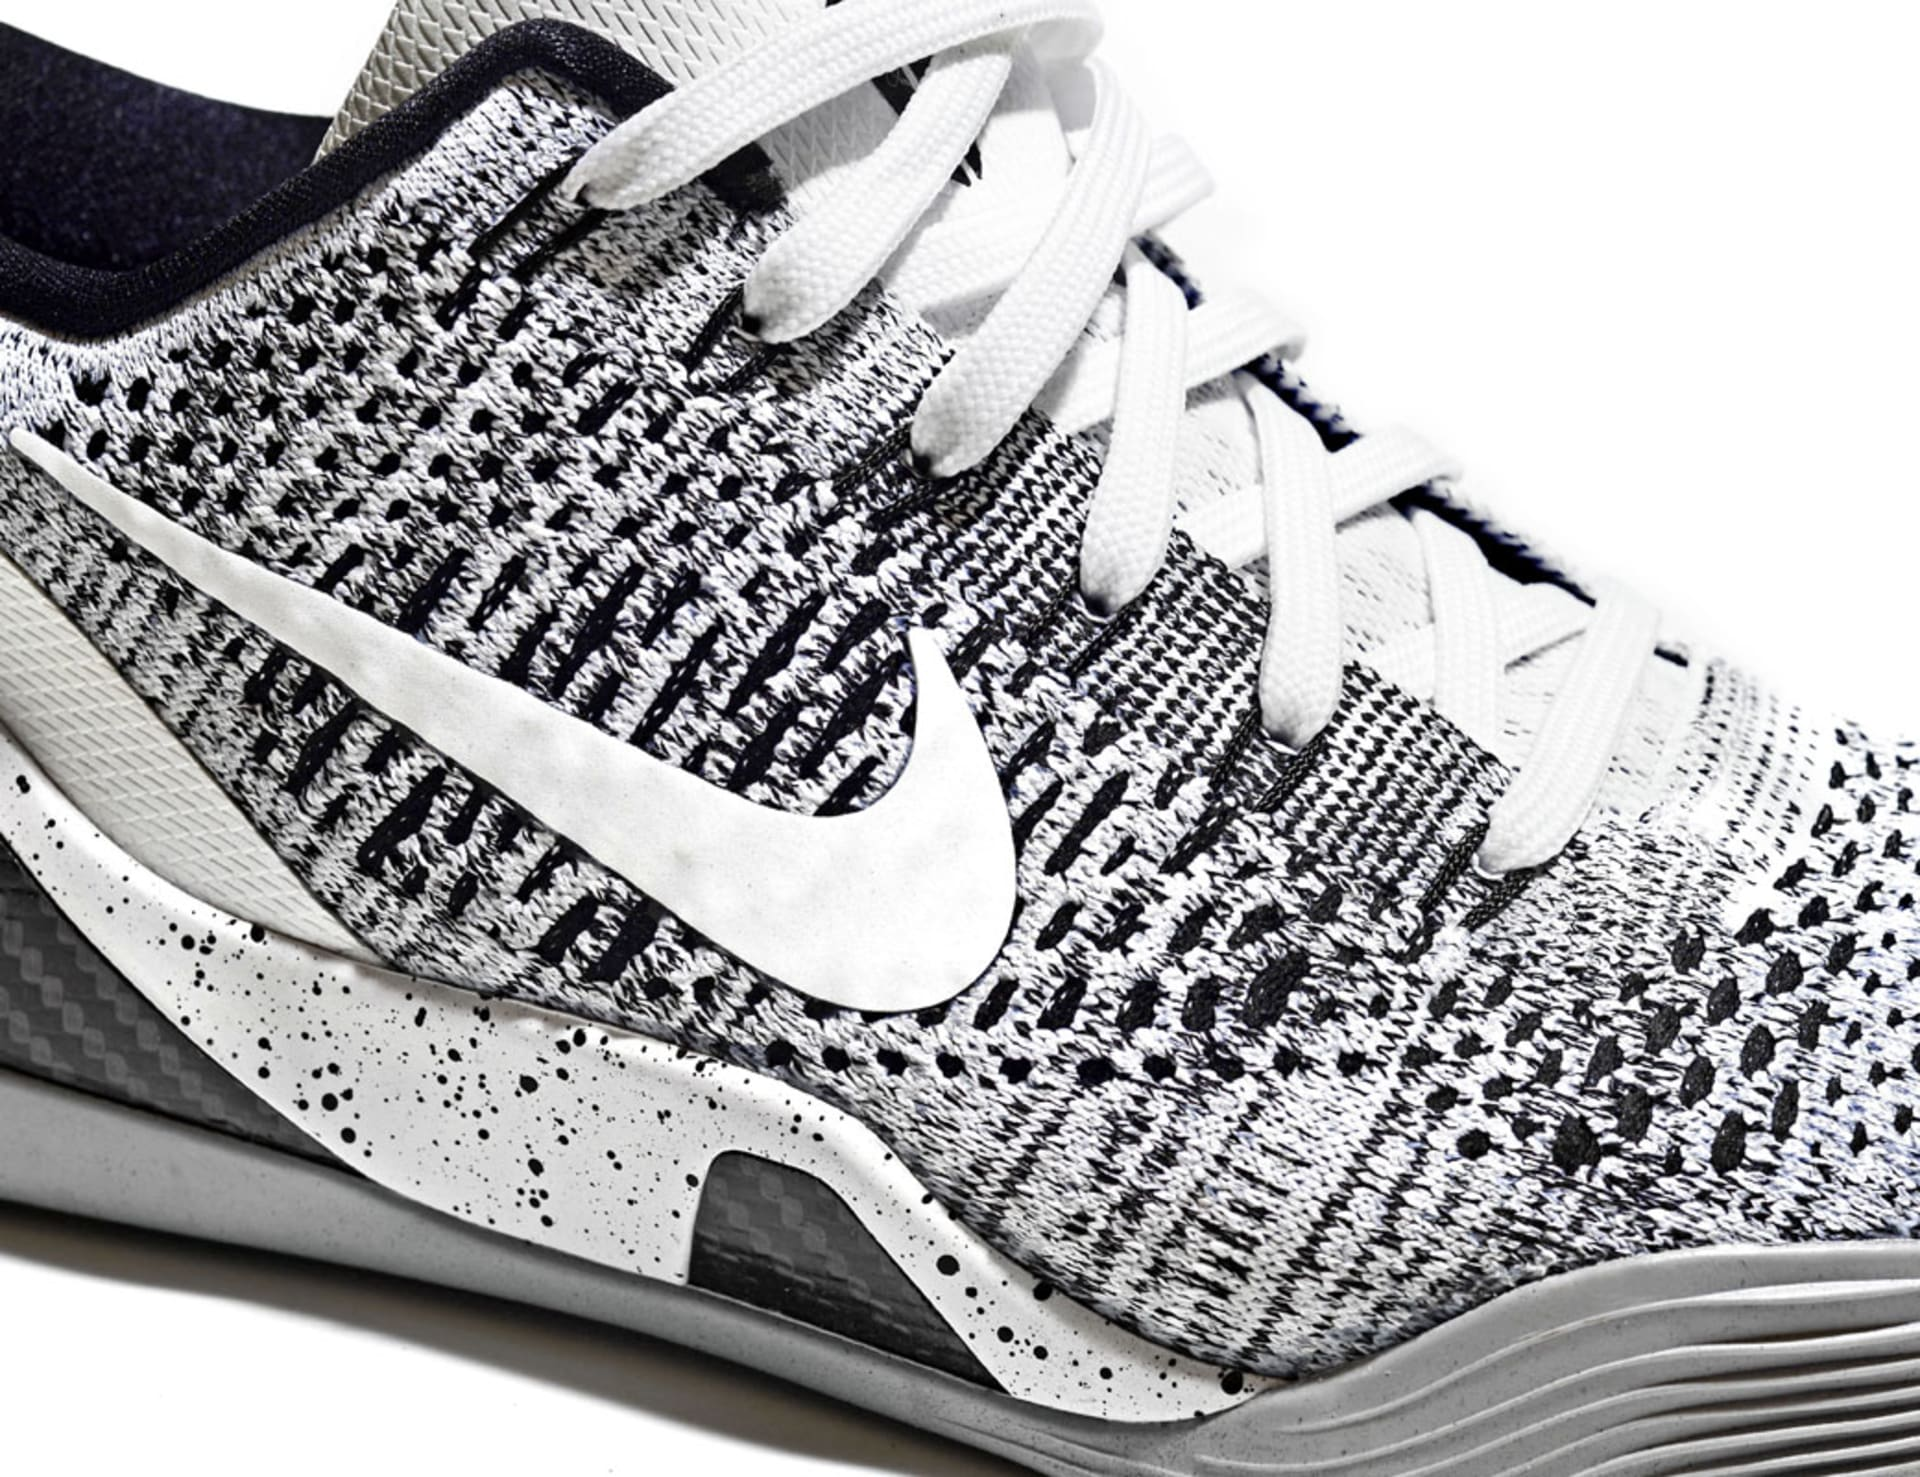 7fafe4094af9 Nike Flyknit Is the Most Stylish and Innovative Sneaker Technology ...